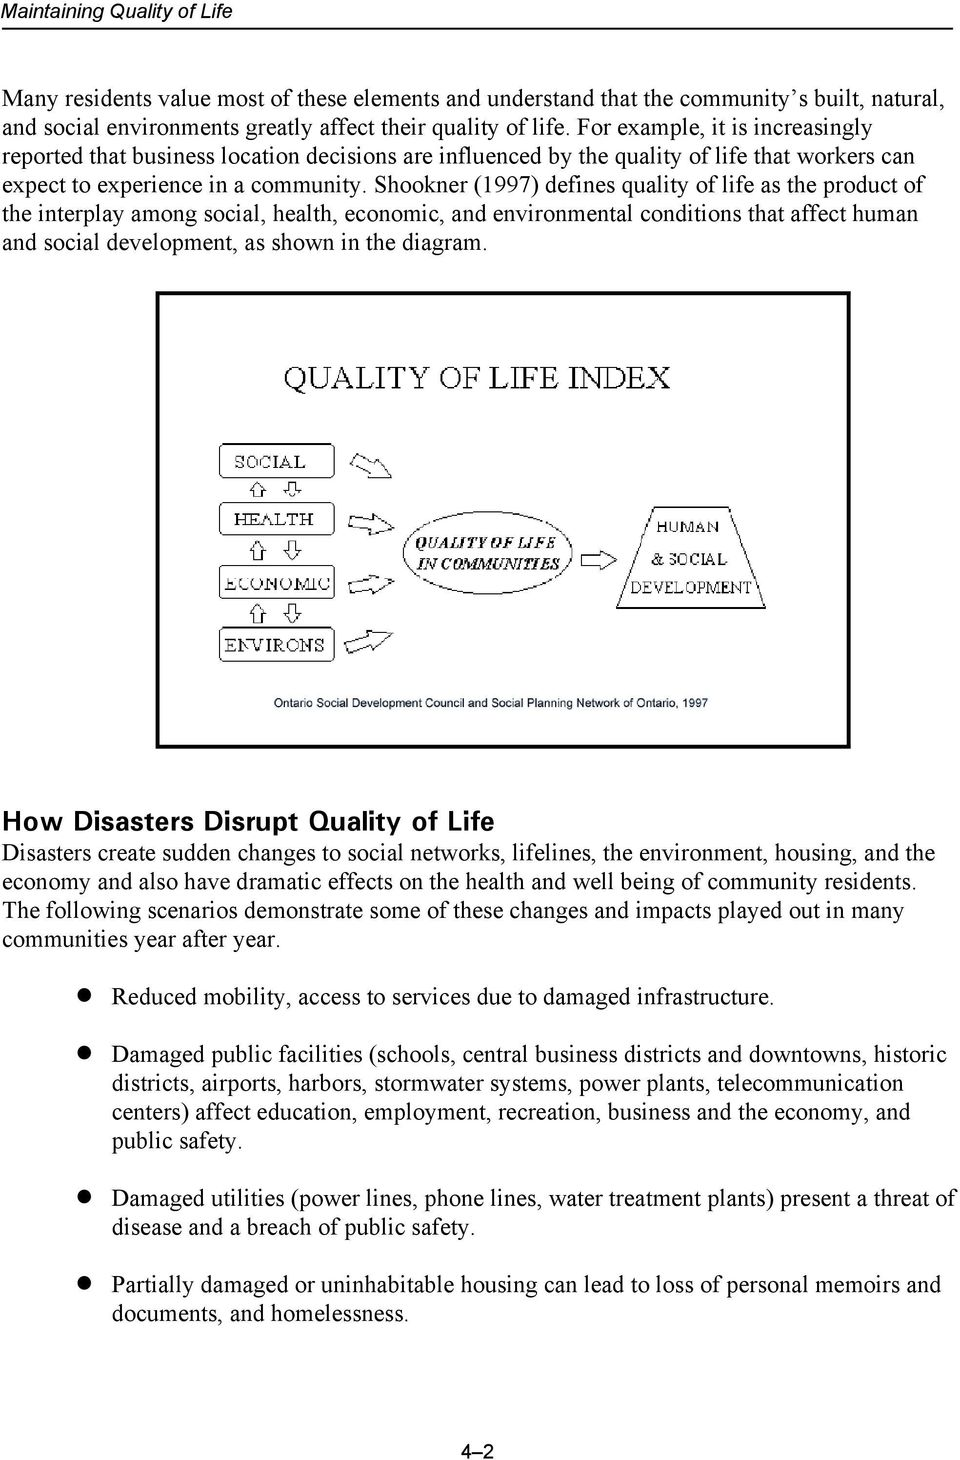 Shookner (1997) defines quality of life as the product of the interplay among social, health, economic, and environmental conditions that affect human and social development, as shown in the diagram.